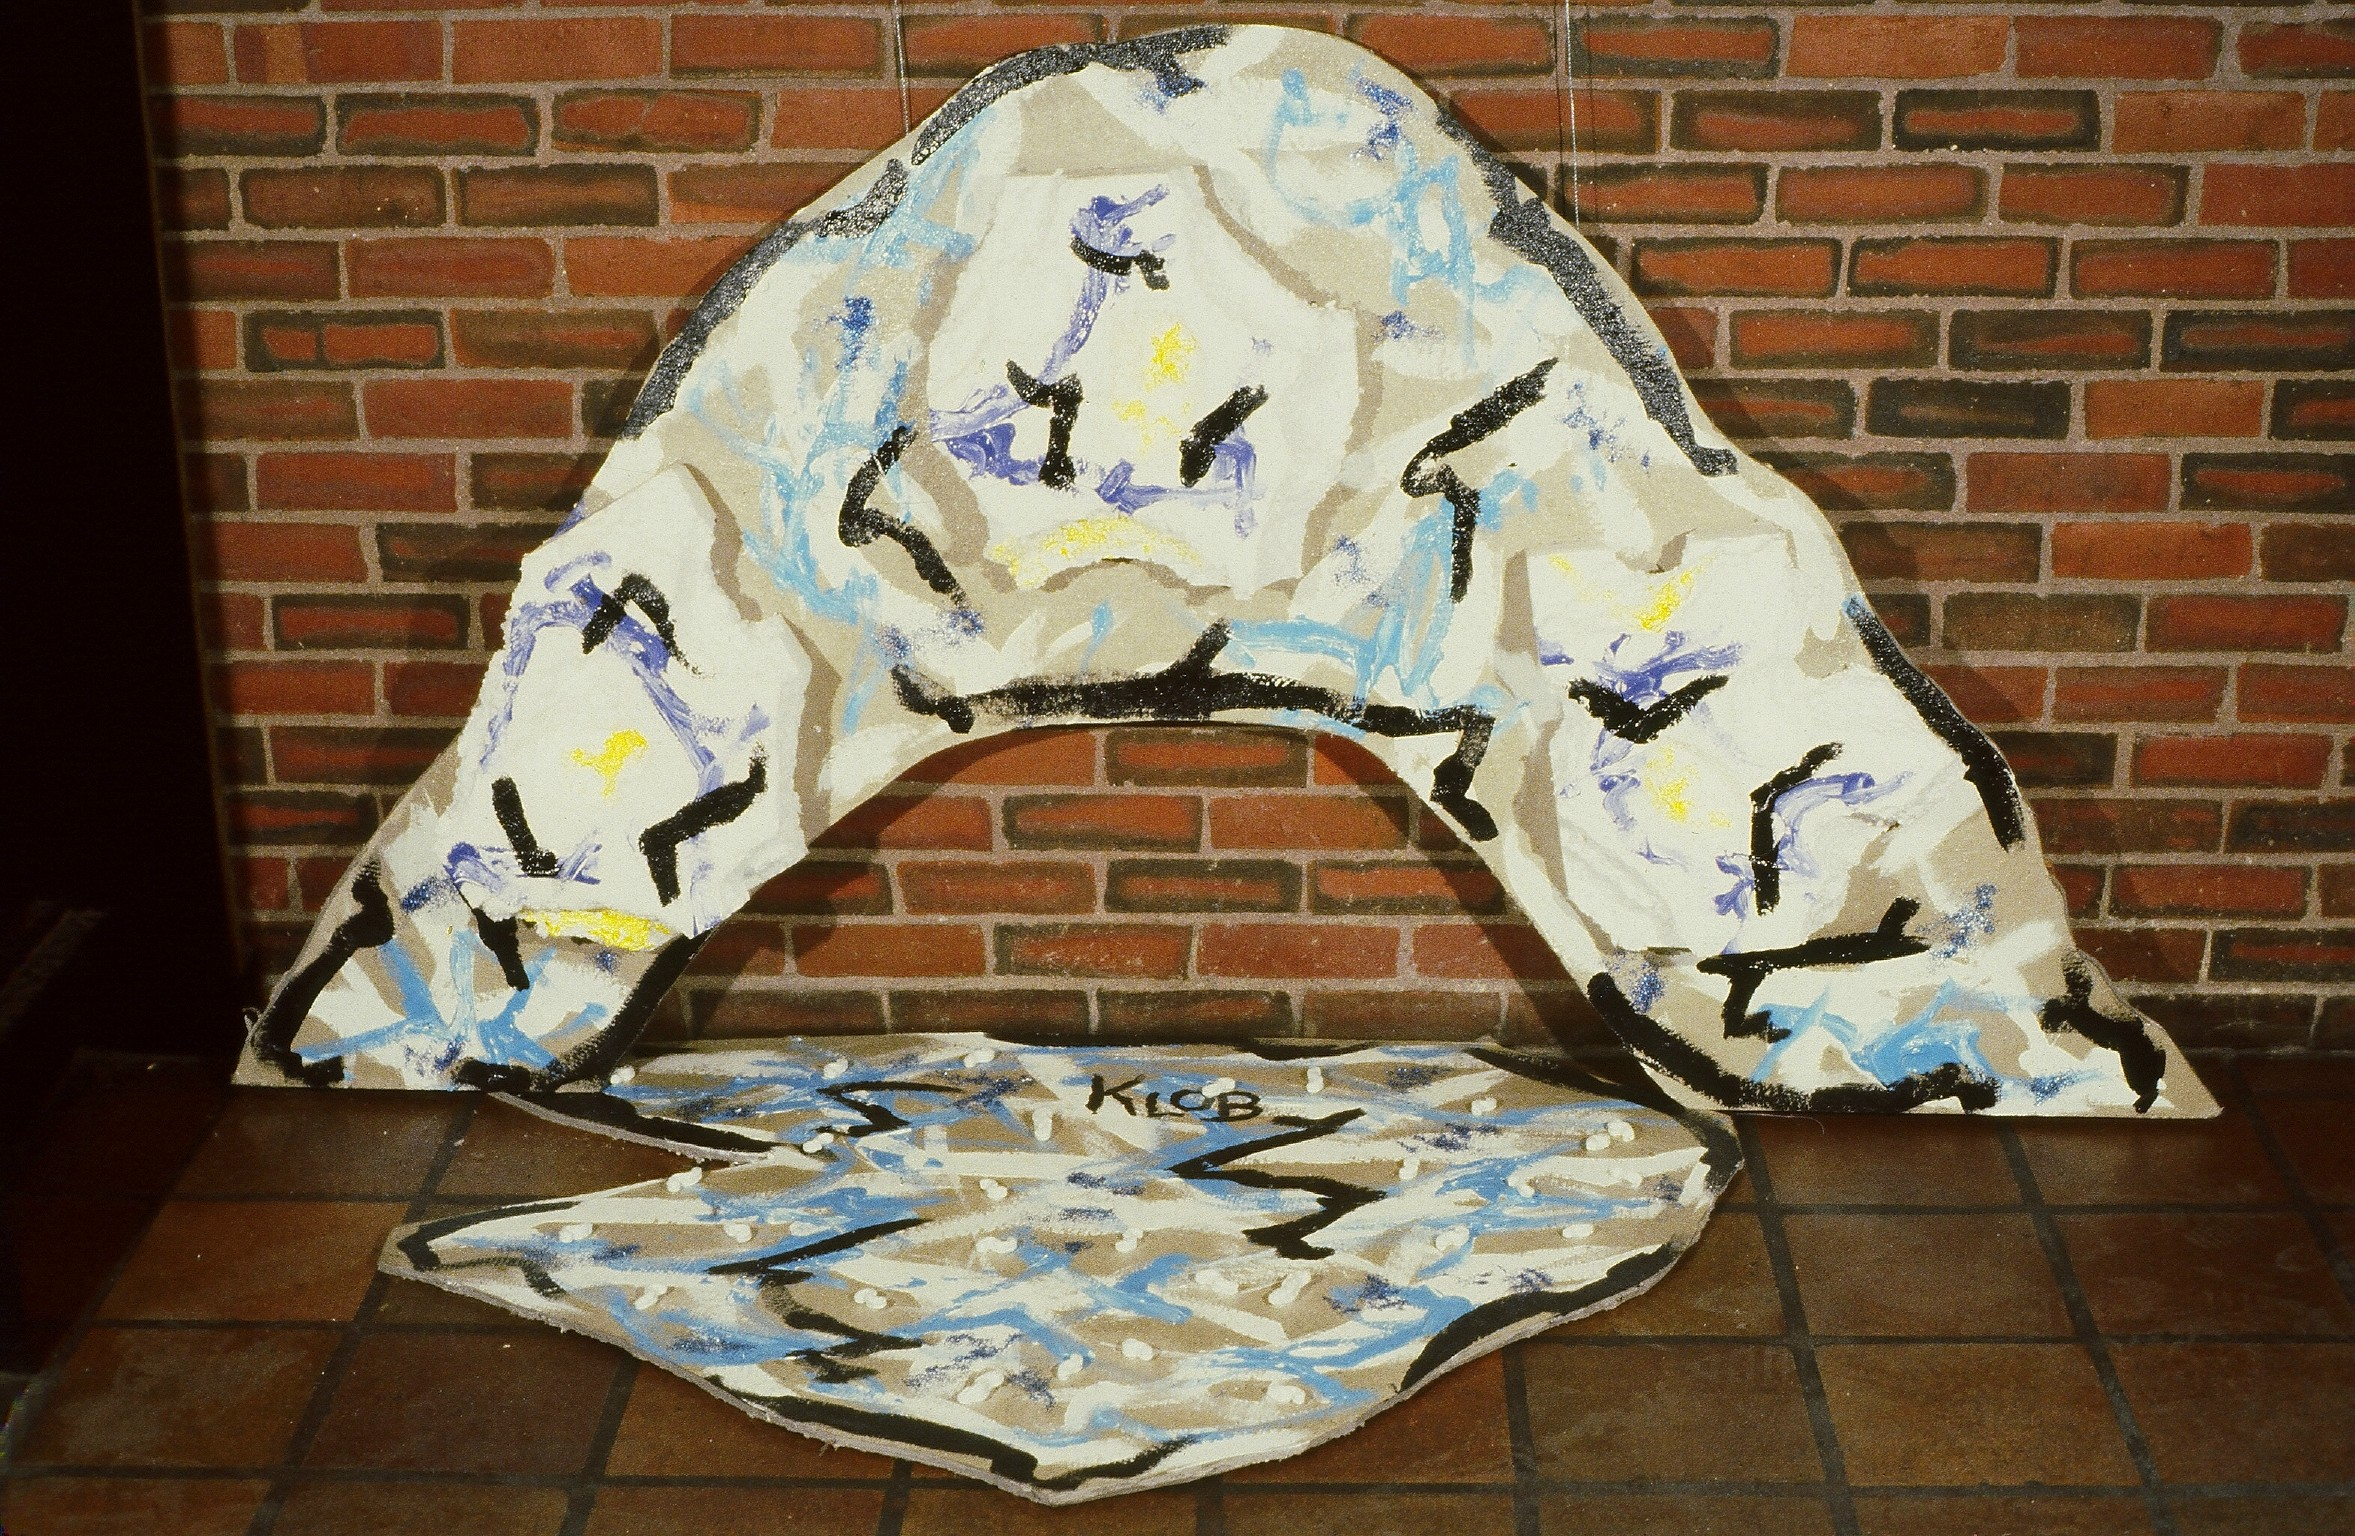 1979; Acrlic, homosote, Styrofoam; 4 ft 2 in X 6 ft 10 in